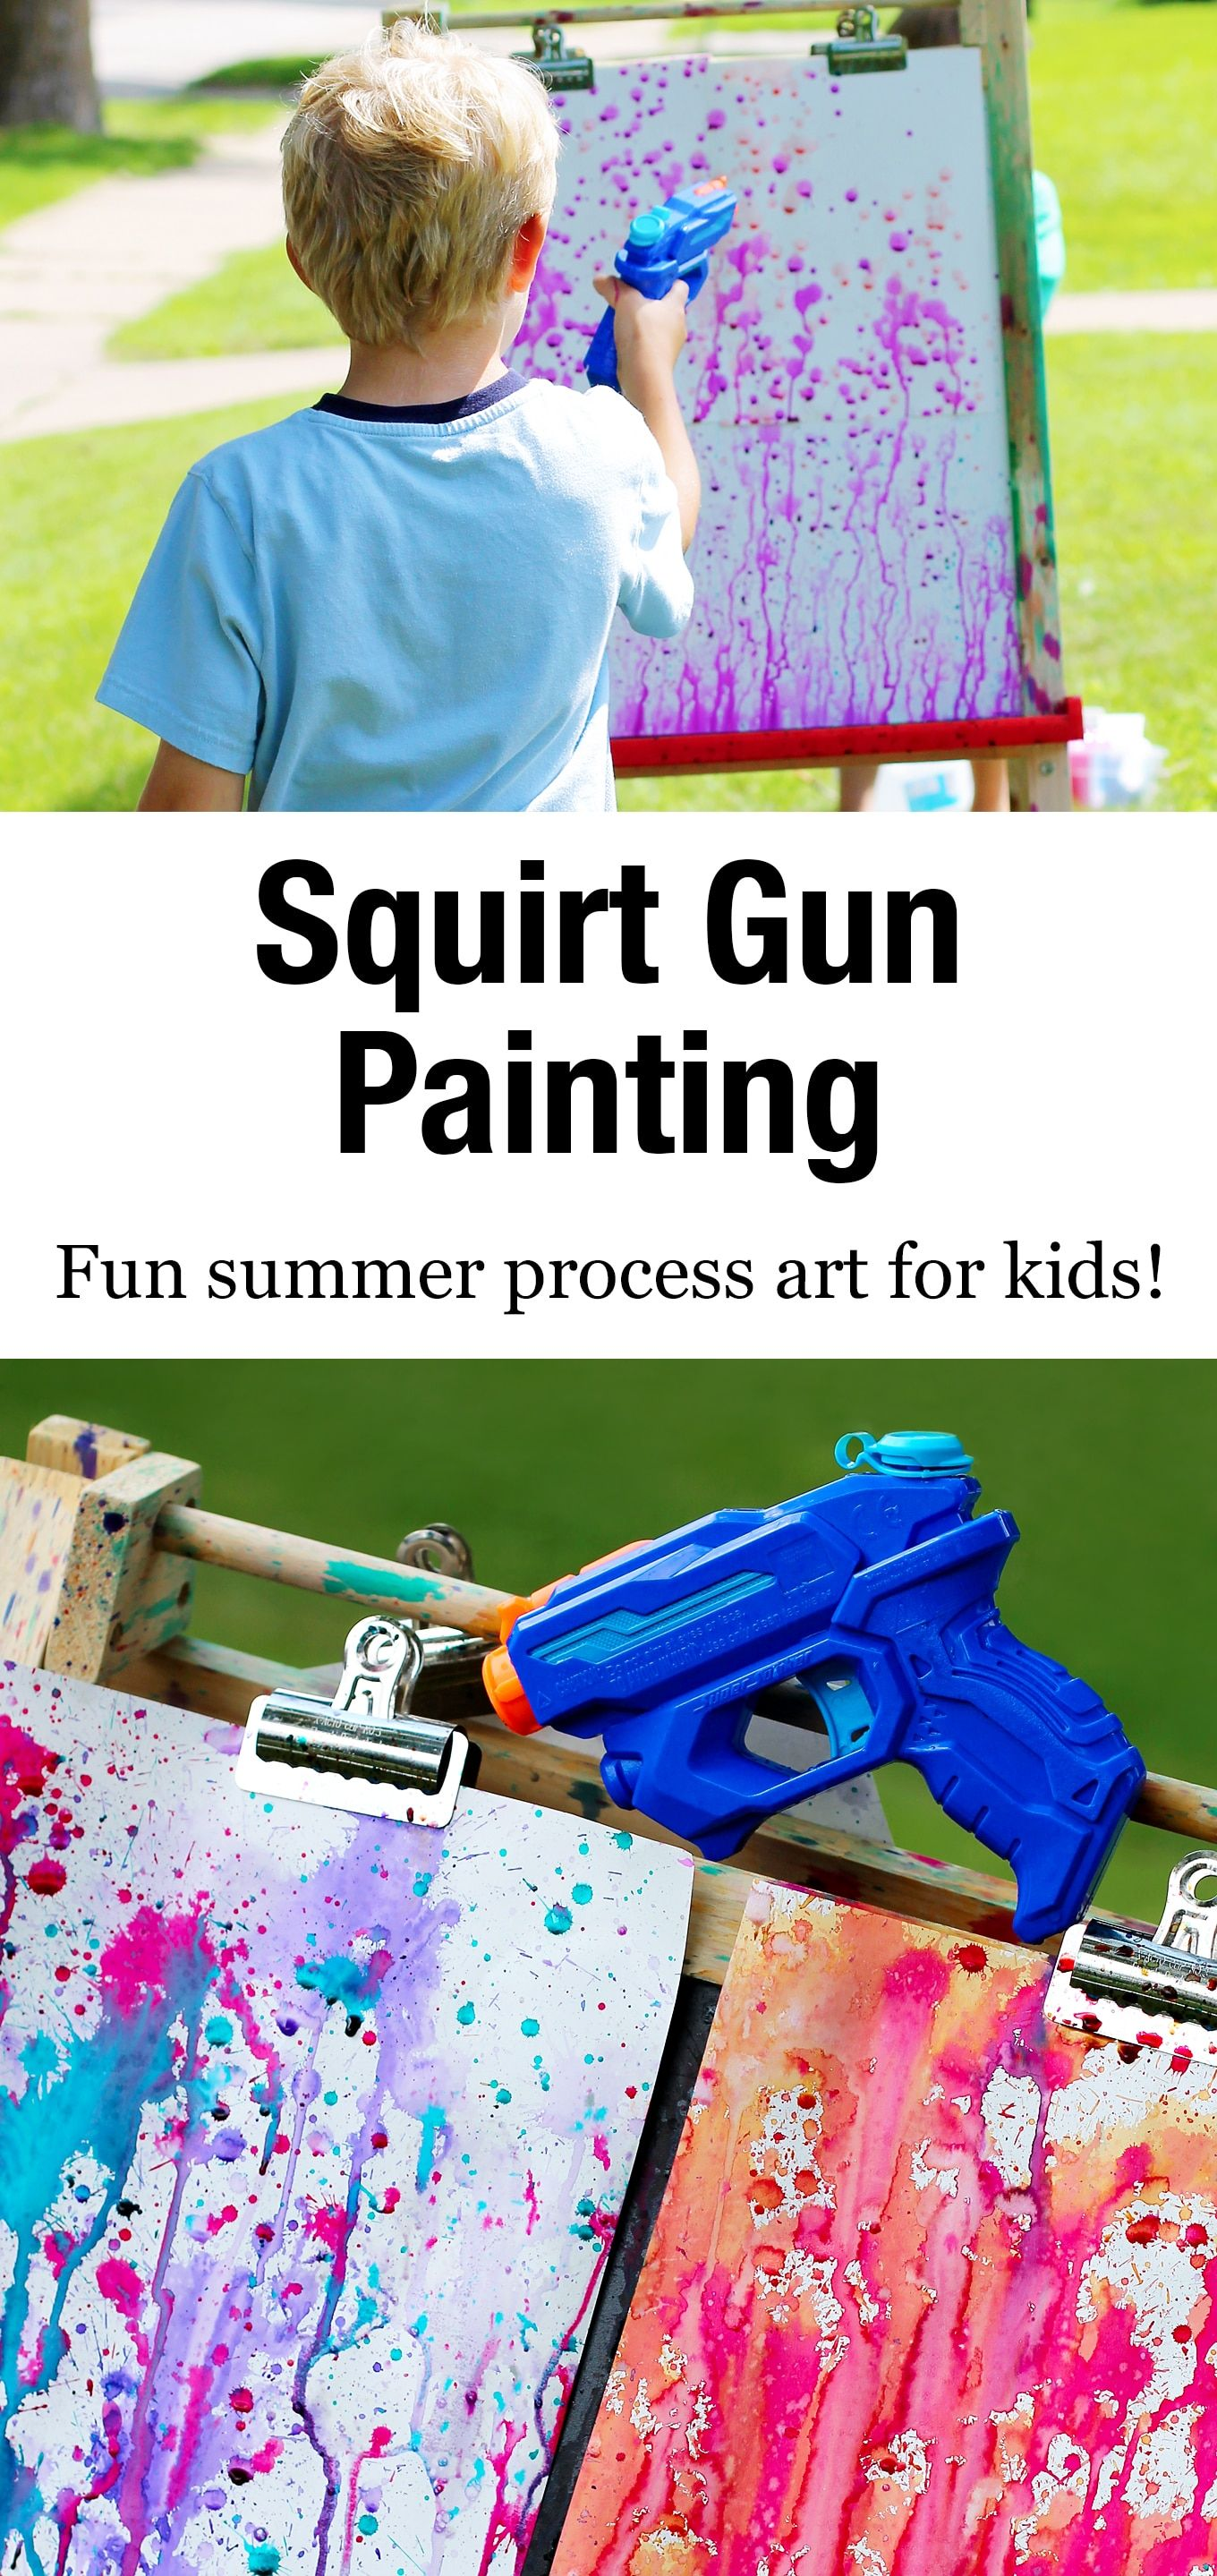 Bust summer boredom at home, school, or camp with Squirt Gun Painting, an amazing art experience for kids of all ages. #squirtgunpainting #squirtpainting #summerart #summerartforkids #summercrafts #watercolorart #kidsart #squirtgunpainting #watergunpainting #summer #kidscrafts via @firefliesandmudpies